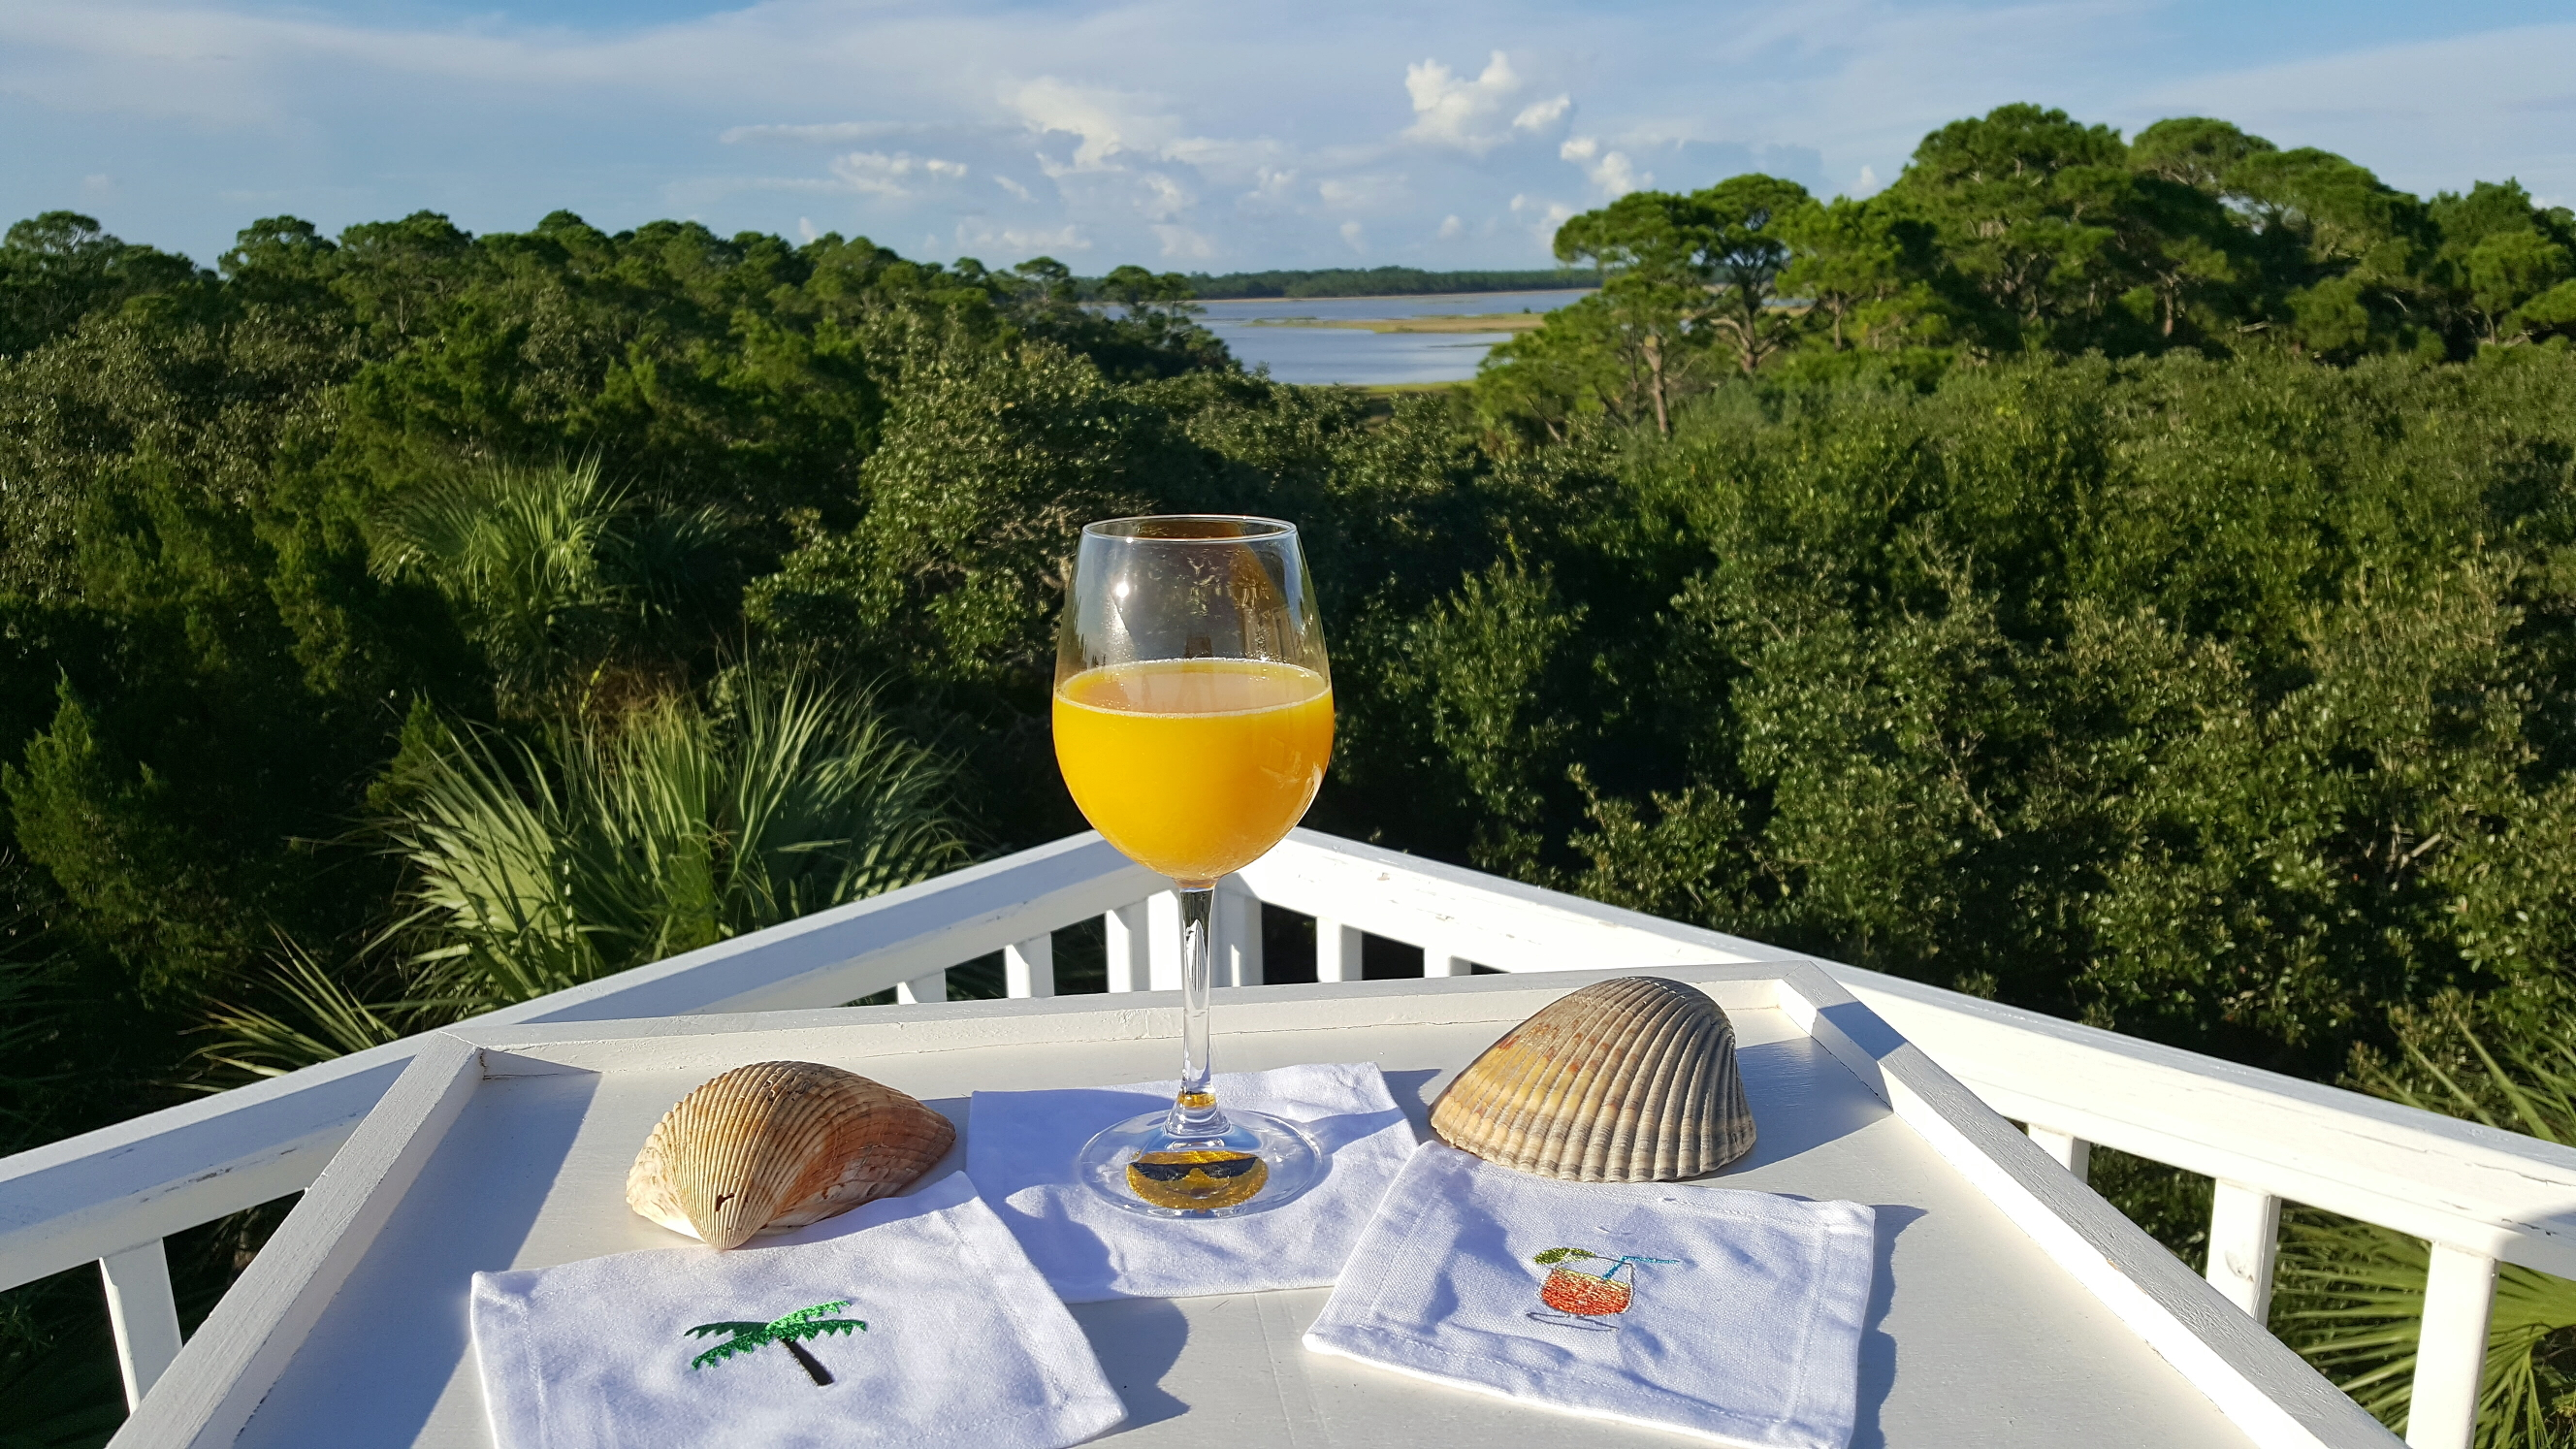 Gulf County, FL | Beachy Keen vacation rental - view of St. Joseph Bay